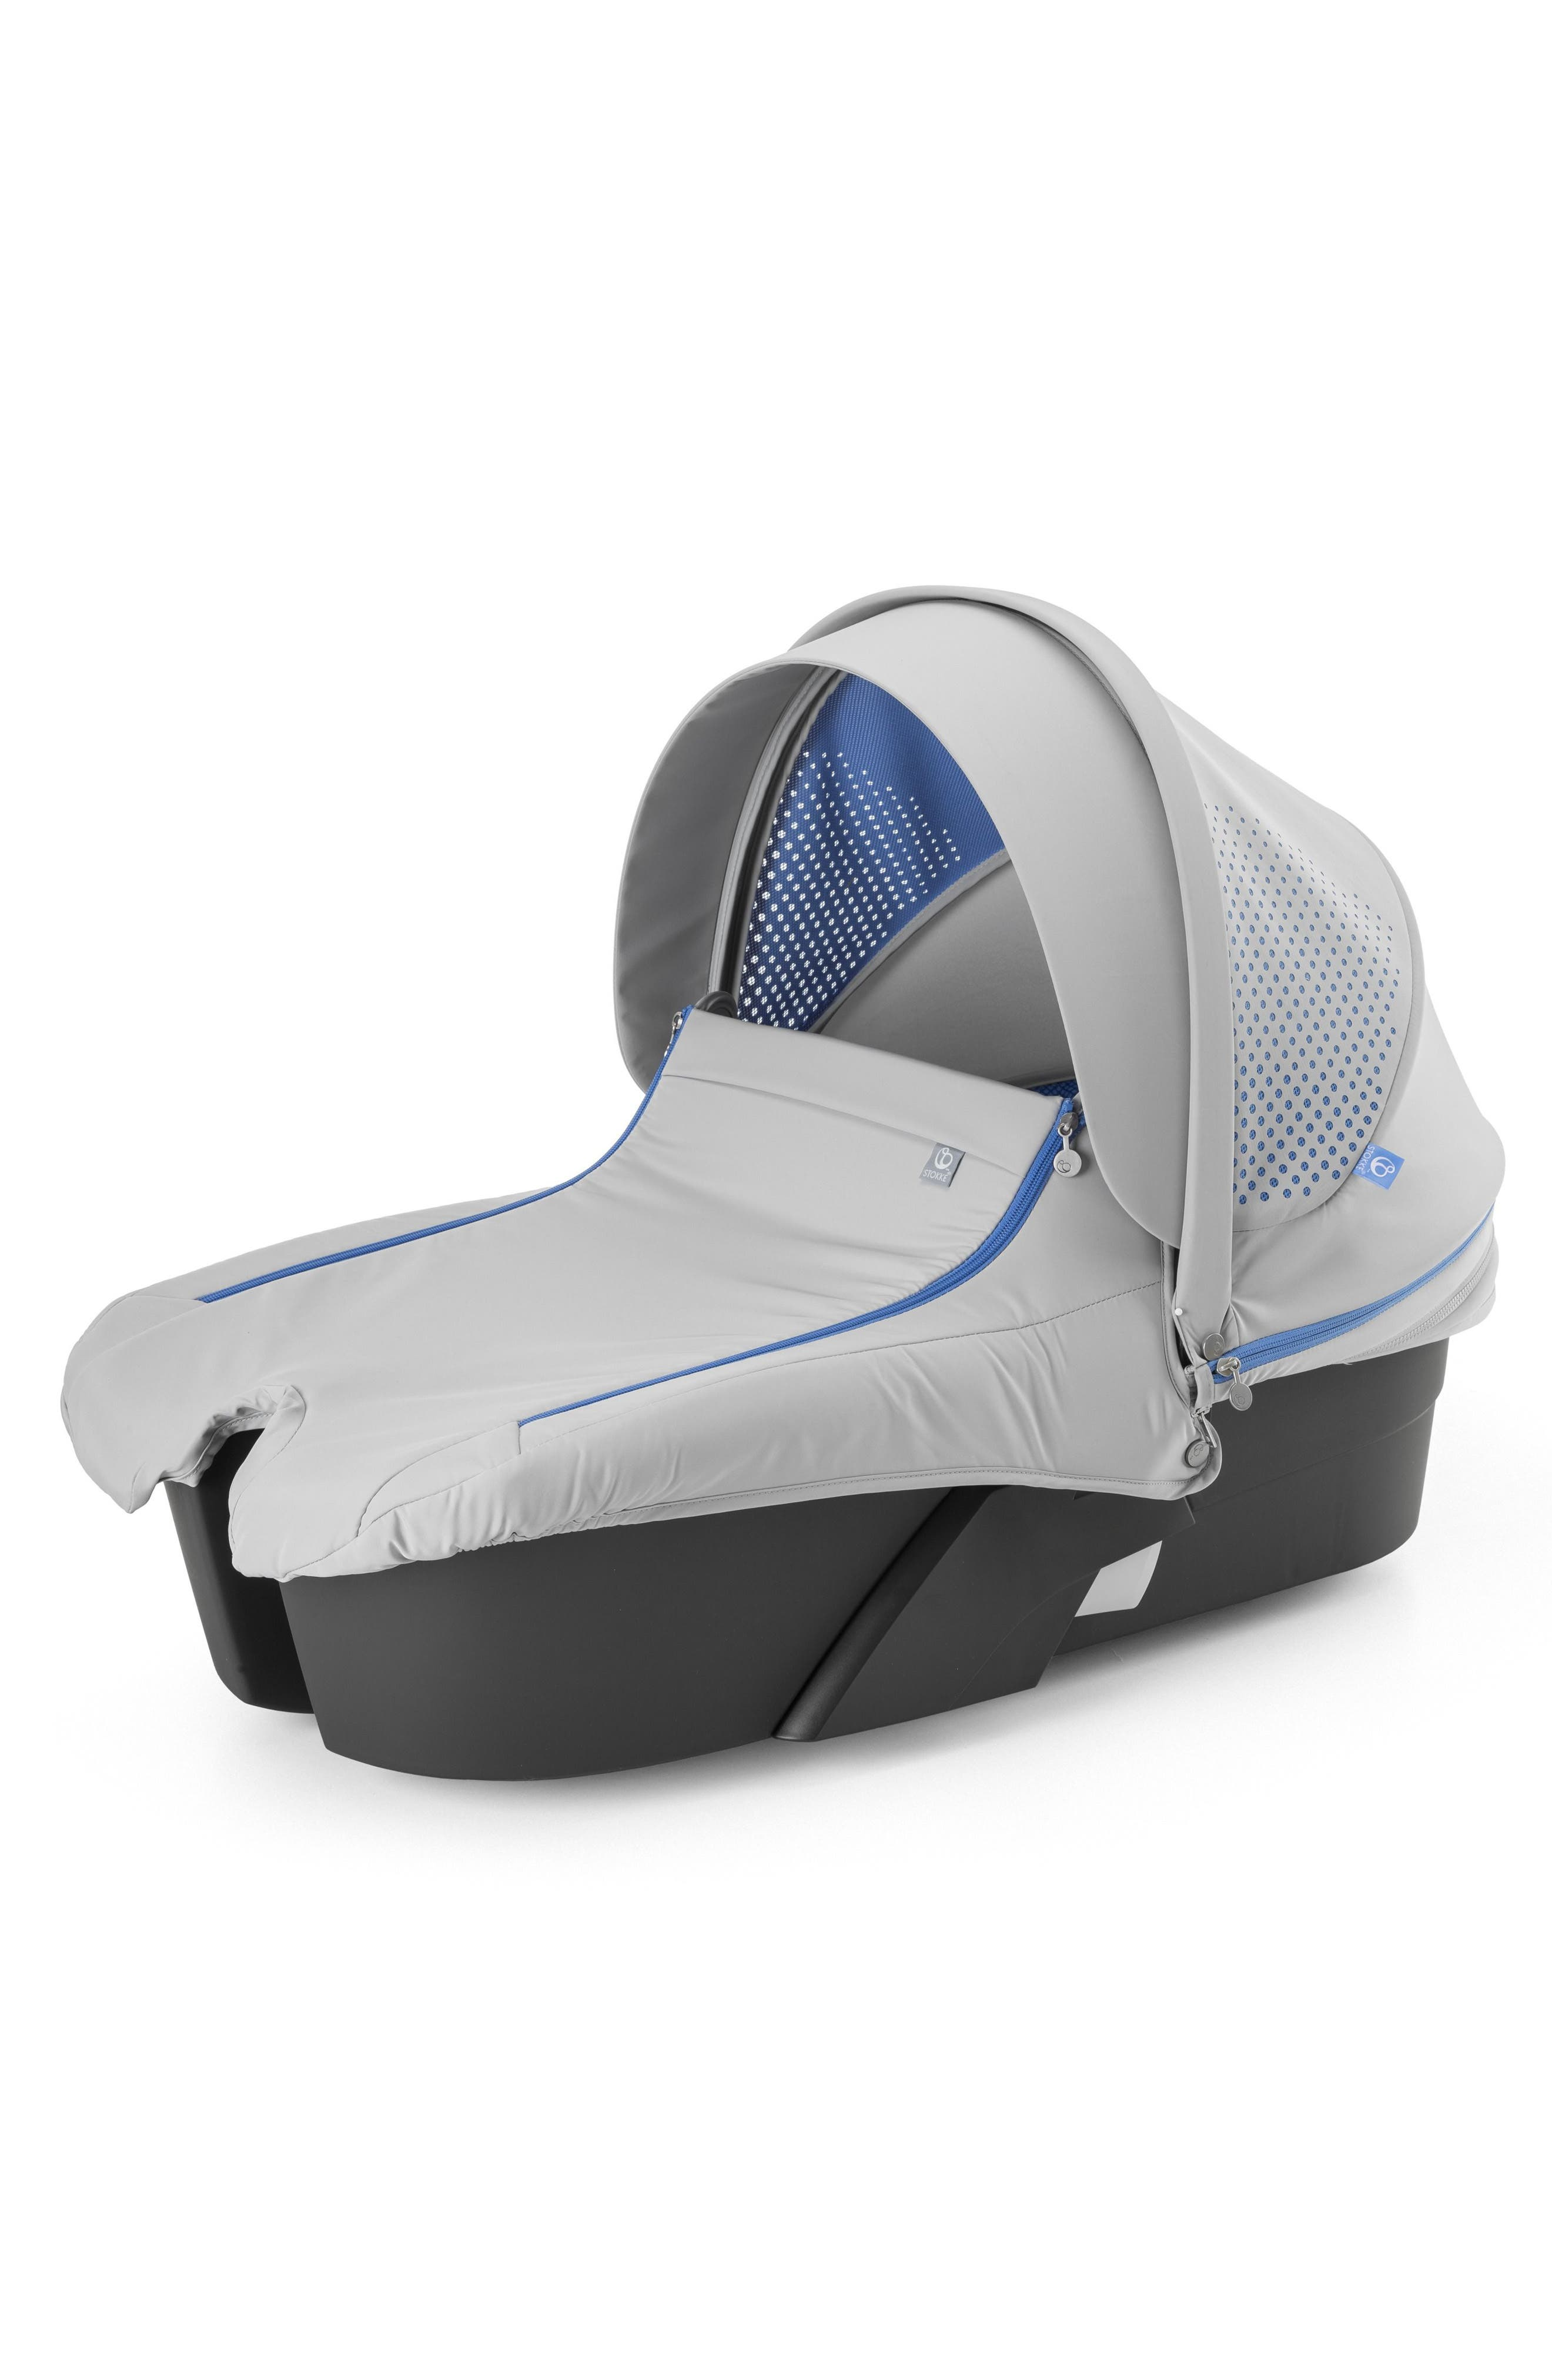 Xplory<sup>®</sup> Athleisure Stroller Carry Cot Attachment,                             Main thumbnail 1, color,                             410